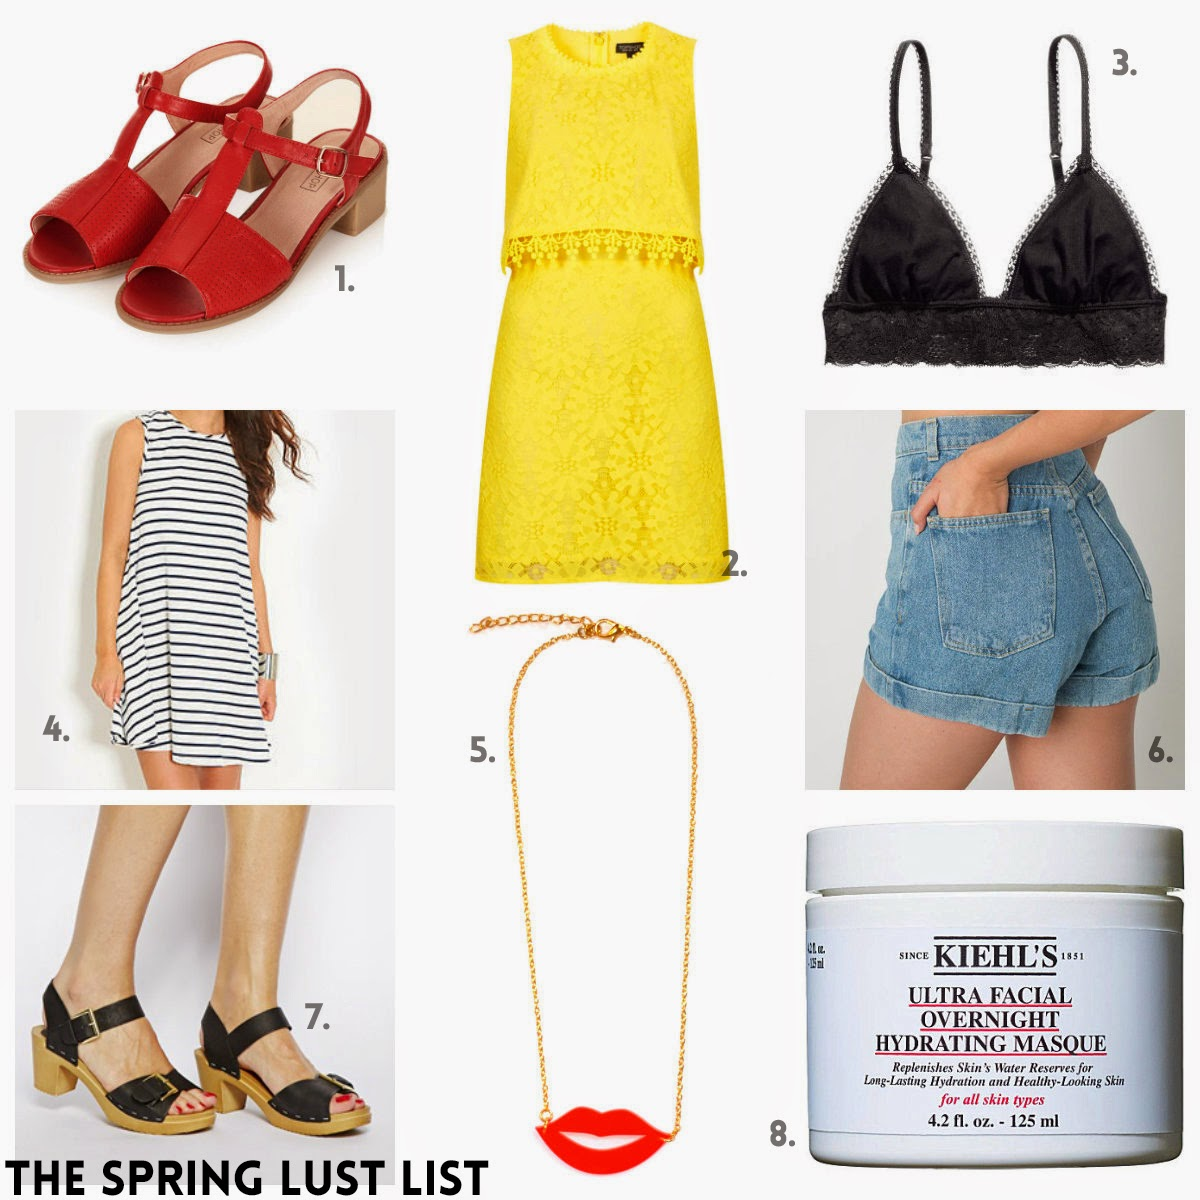 8b8e6233ad8da7 THE SPRING LUST LIST. My wardrobe is in serious need of an overhaul. To be  honest, I feel like everything needs a bit of an overhaul at the moment, ...